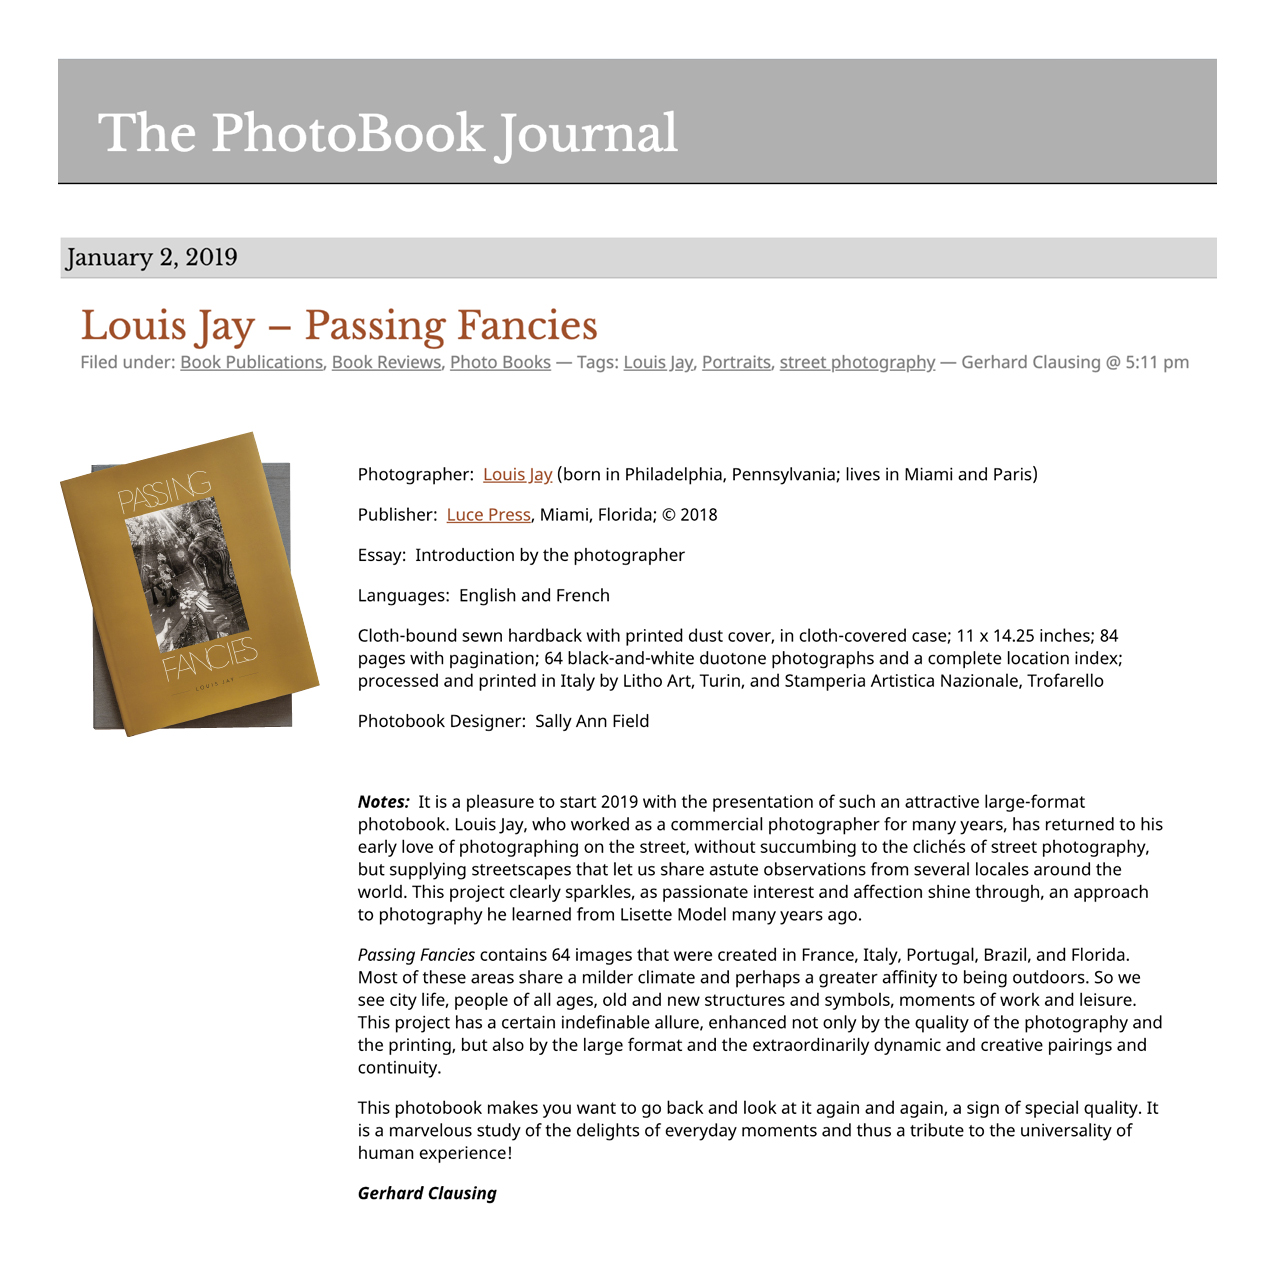 The PhotoBook Journal Review Press Clipping.jpg